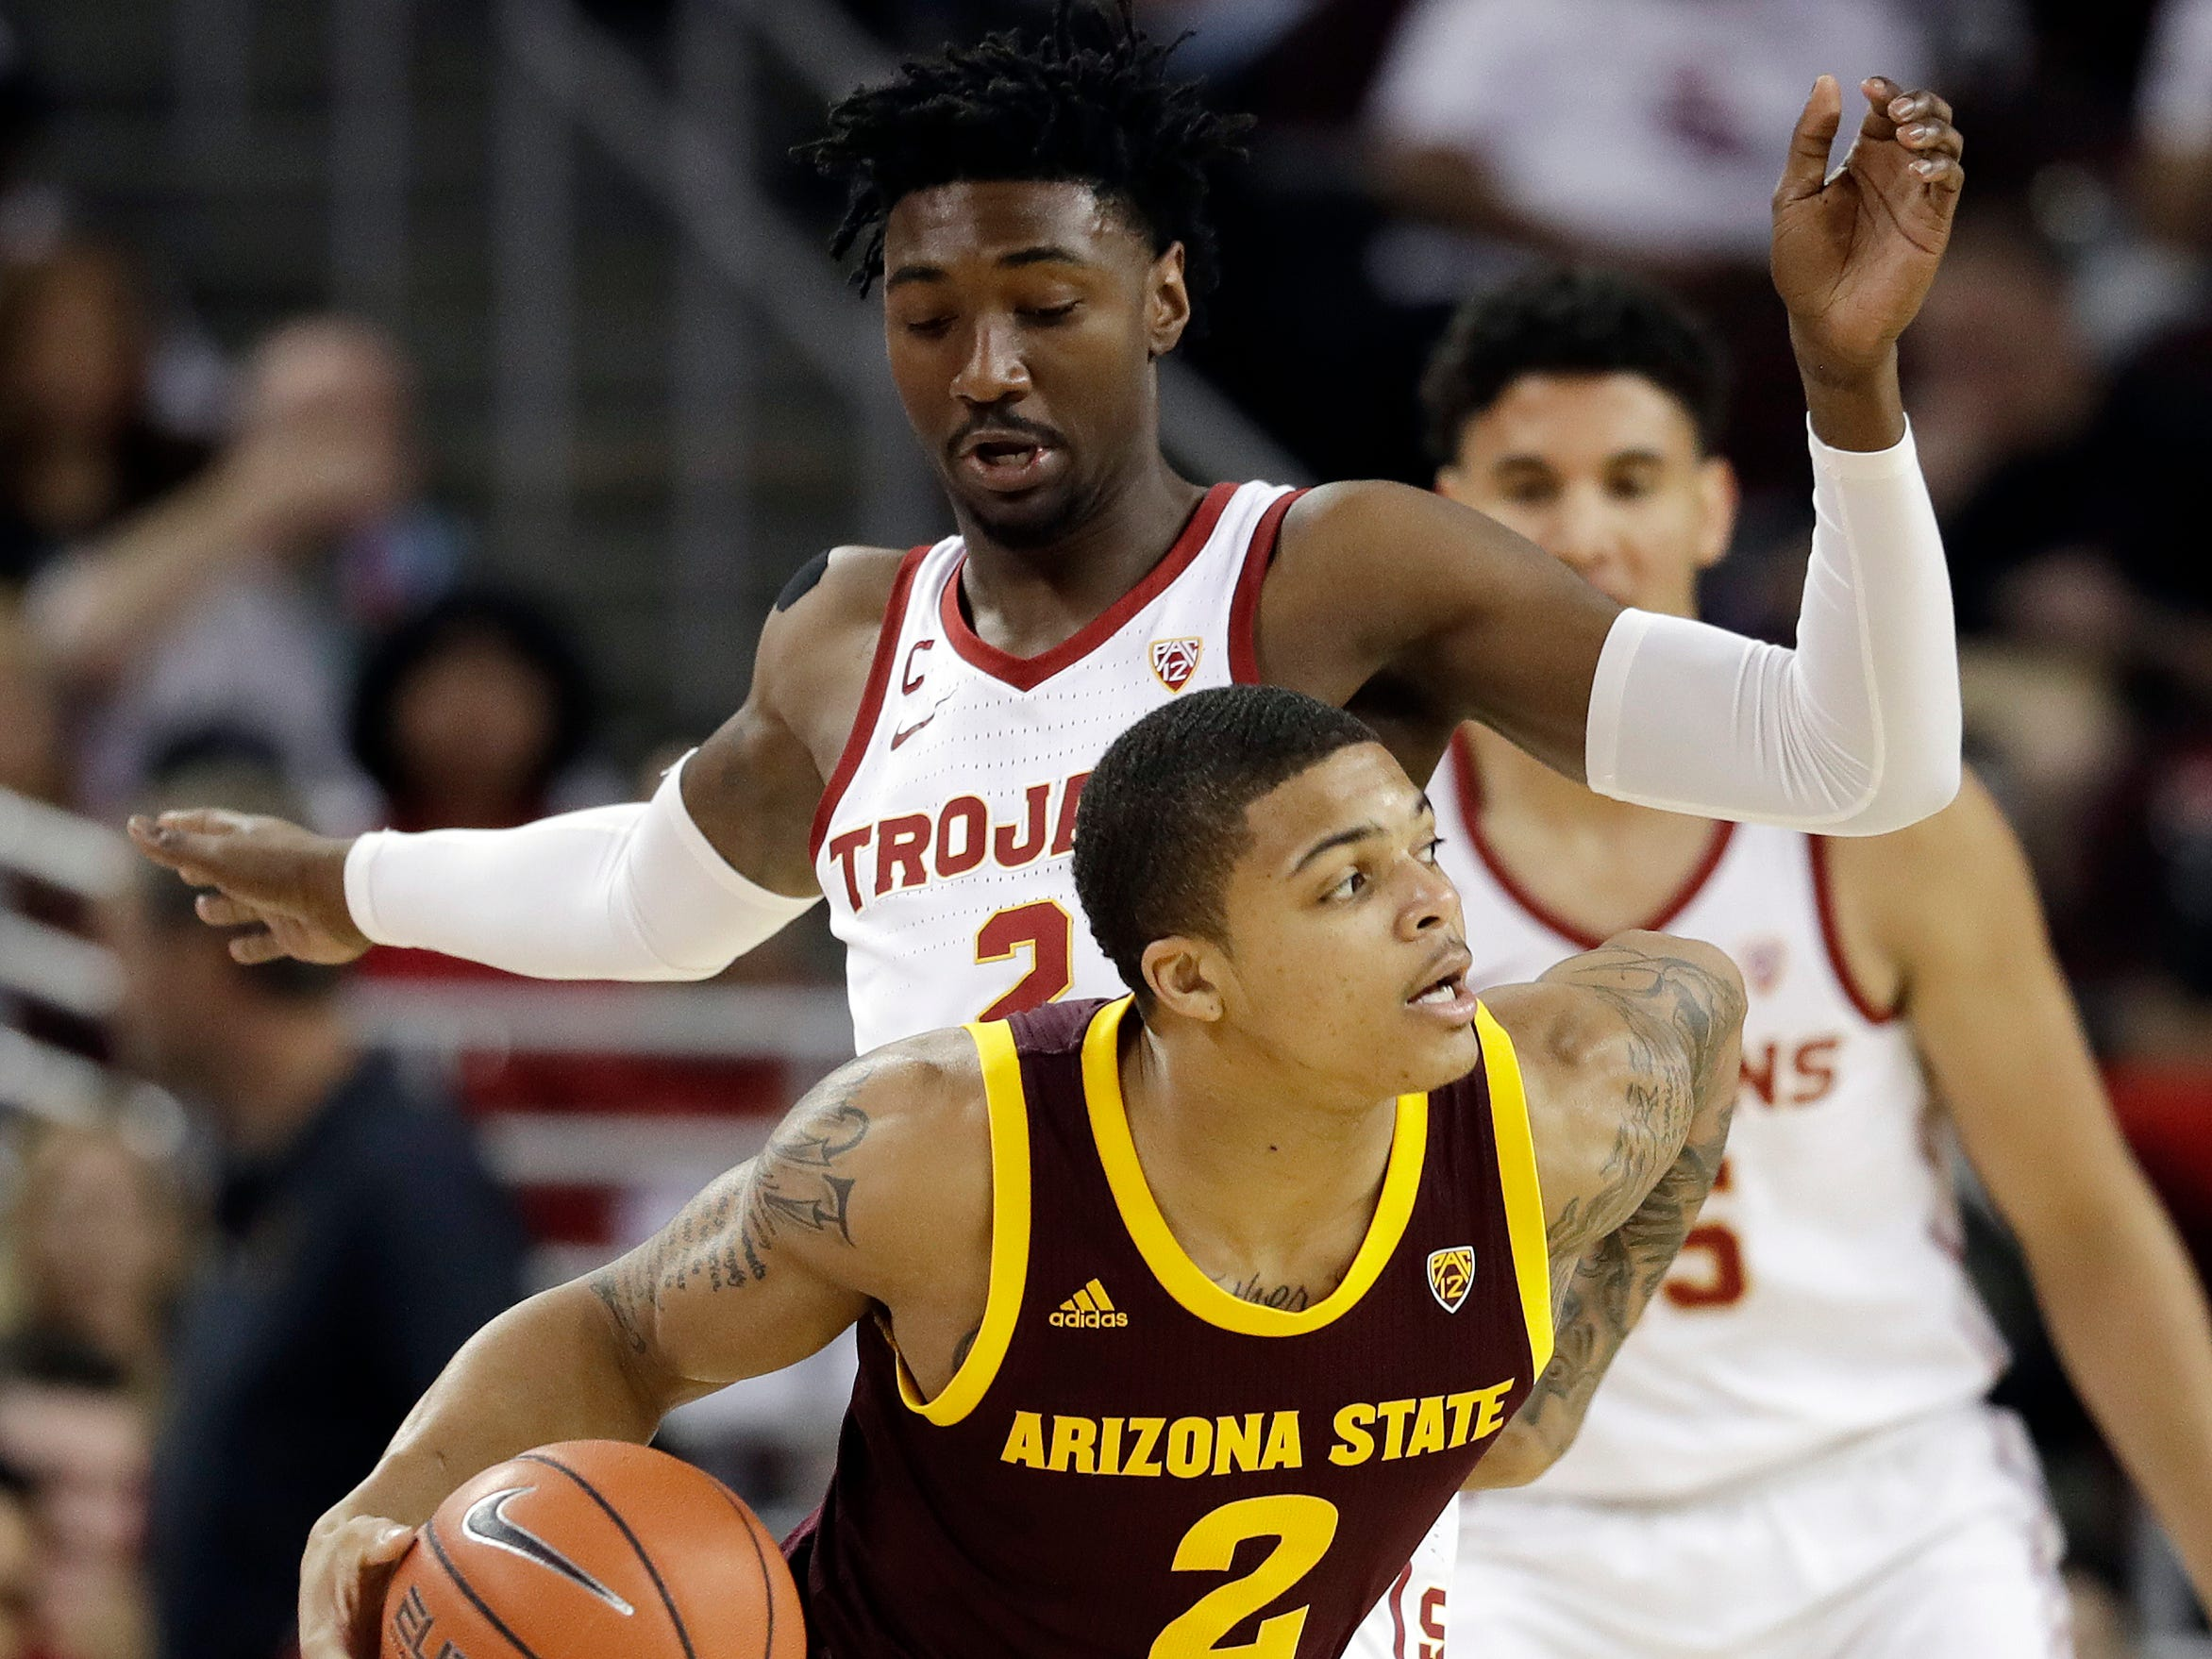 Arizona State guard Rob Edwards, bottom, is defended by Southern California guard Jonah Mathews during the first half of an NCAA college basketball game Saturday, Jan. 26, 2019, in Los Angeles.